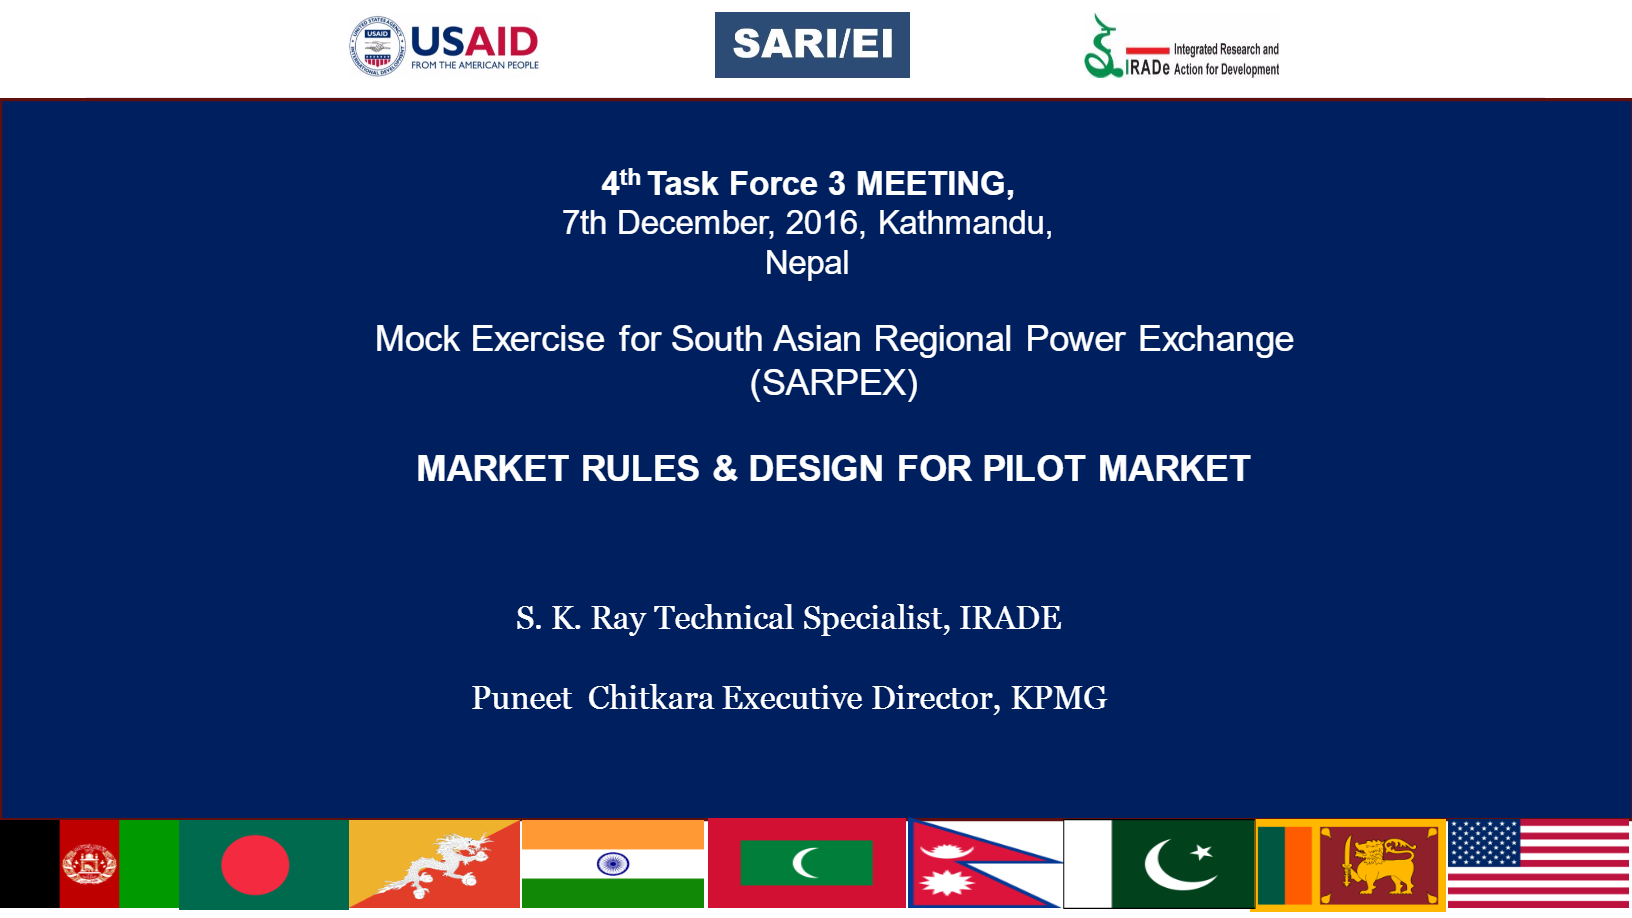 Market-rules-and-design-for-SARPEX-S.K.-Ray-and-Puneet-Chitakra